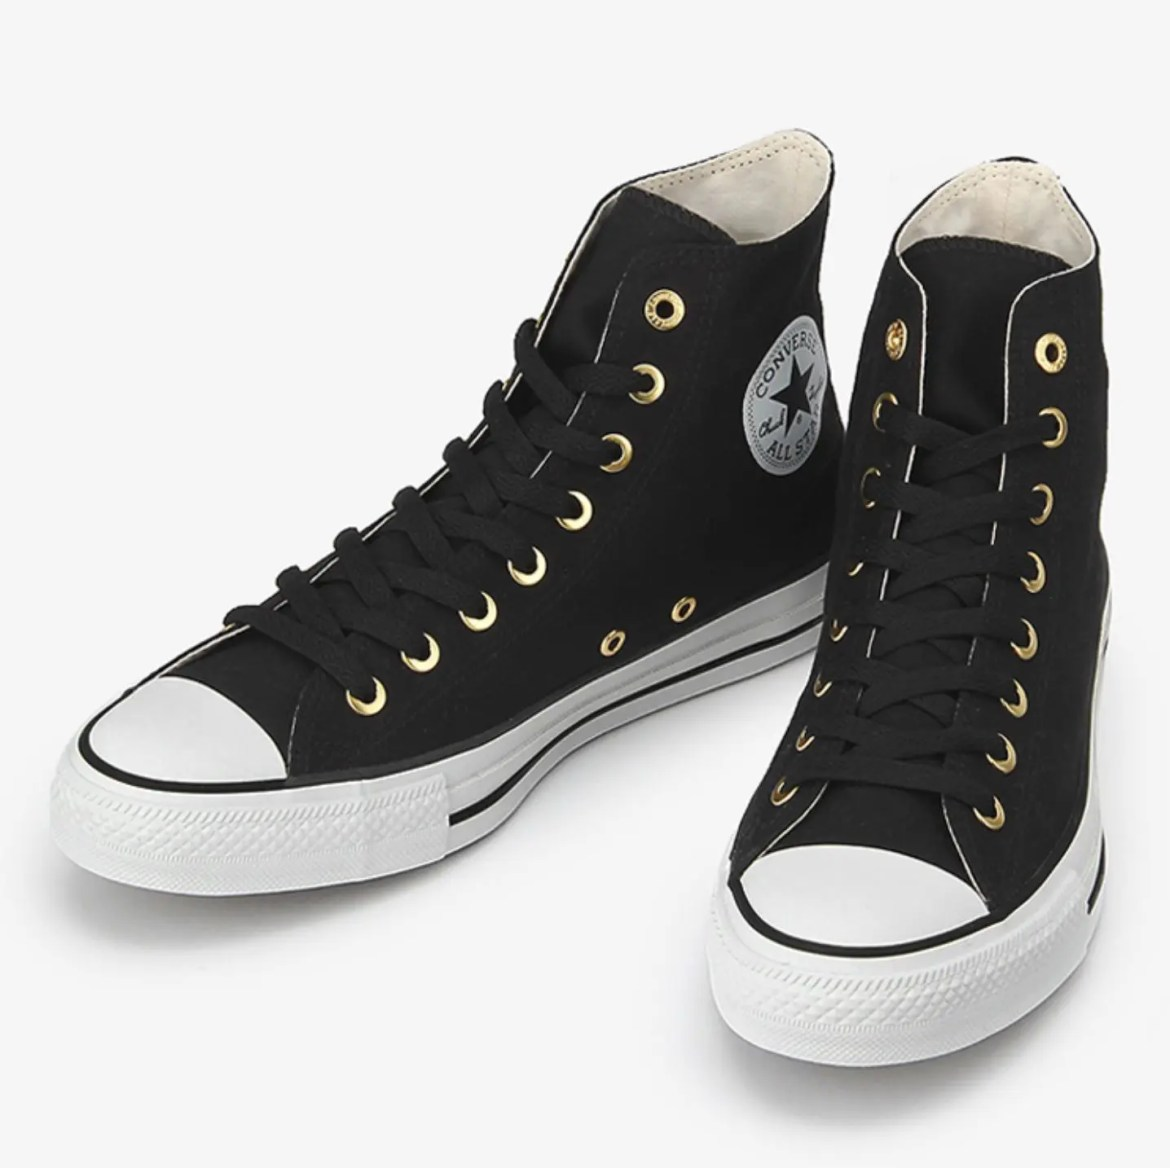 Converse ALL STAR WEARABLE STICKER HI BLACK-02